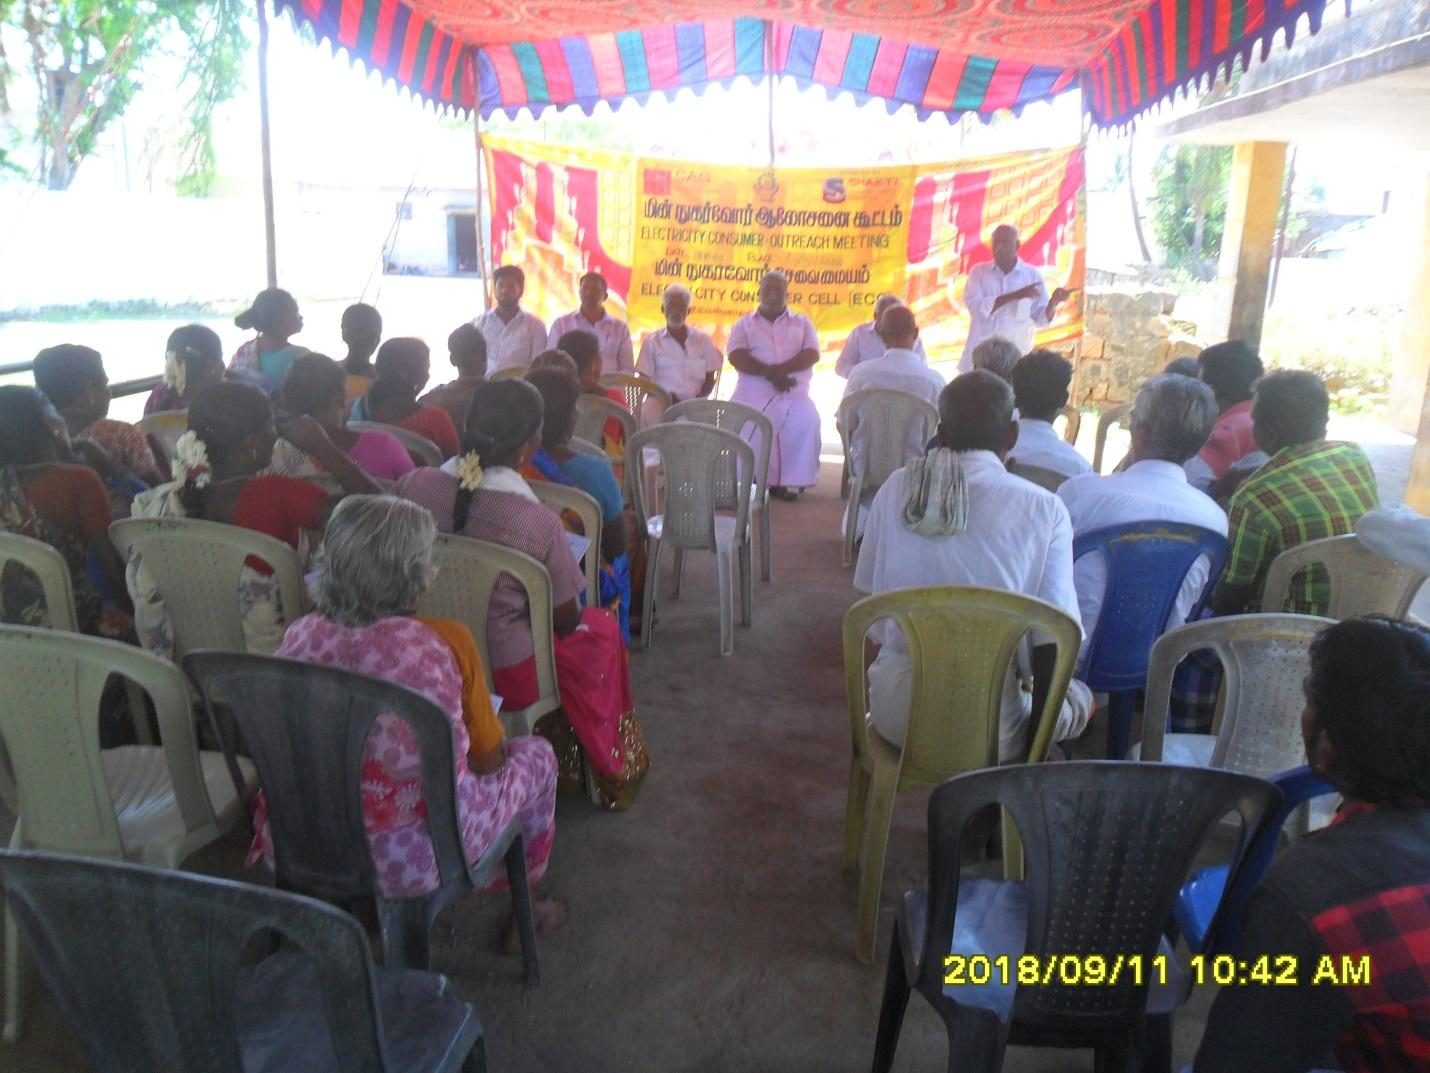 C:\Users\Elcot\Desktop\Outreach Meeting\September\TVM\SAM_0679 - Consumer Tiruvannamalai.JPG